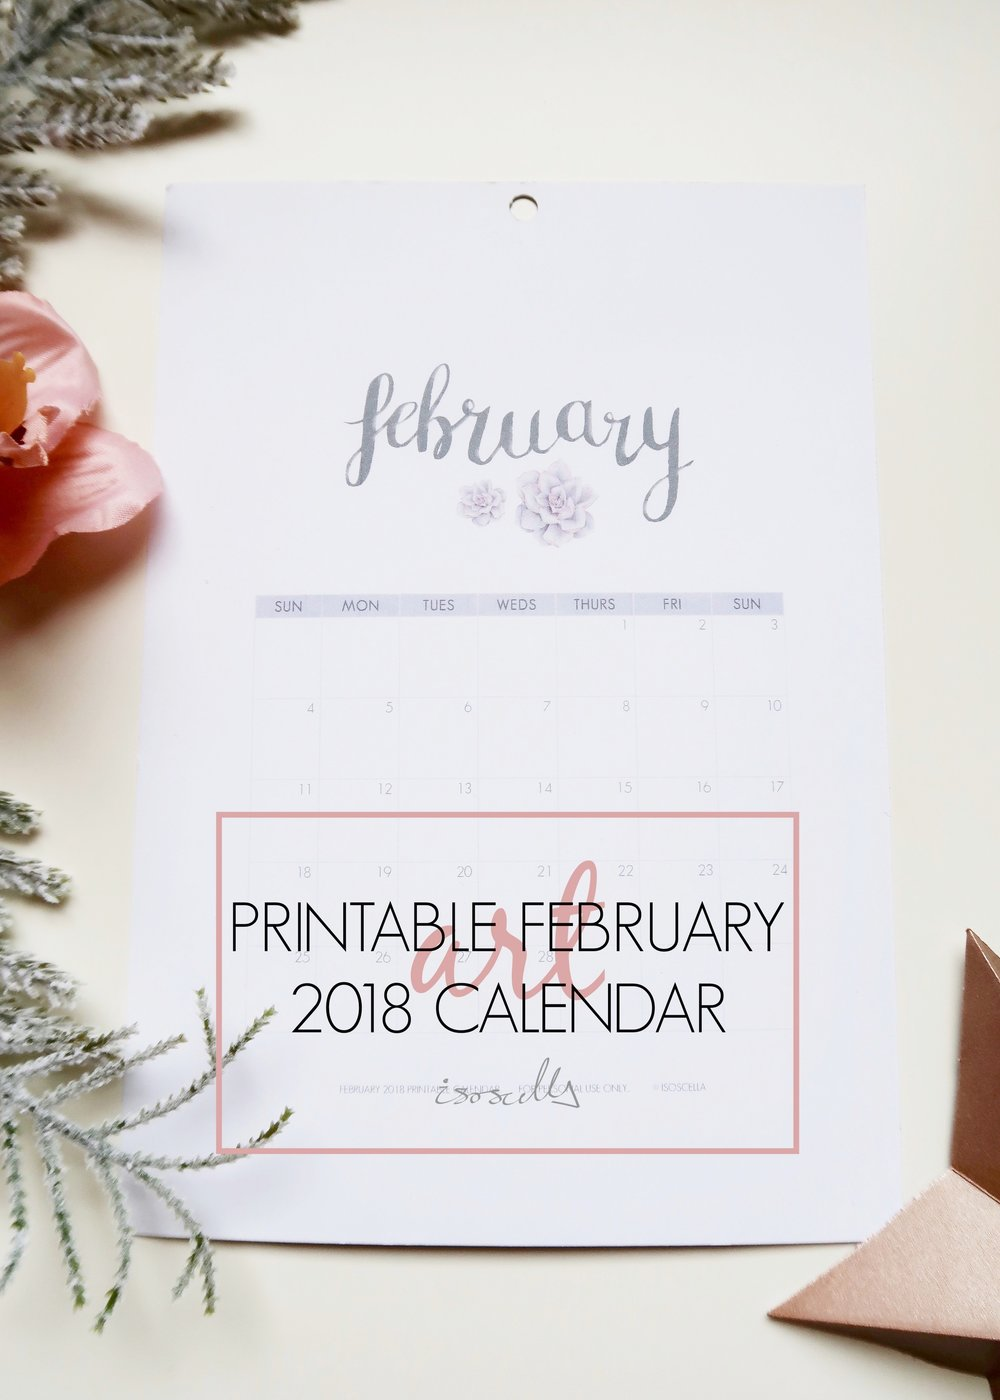 Printable February 2018 Calendar by Isoscella